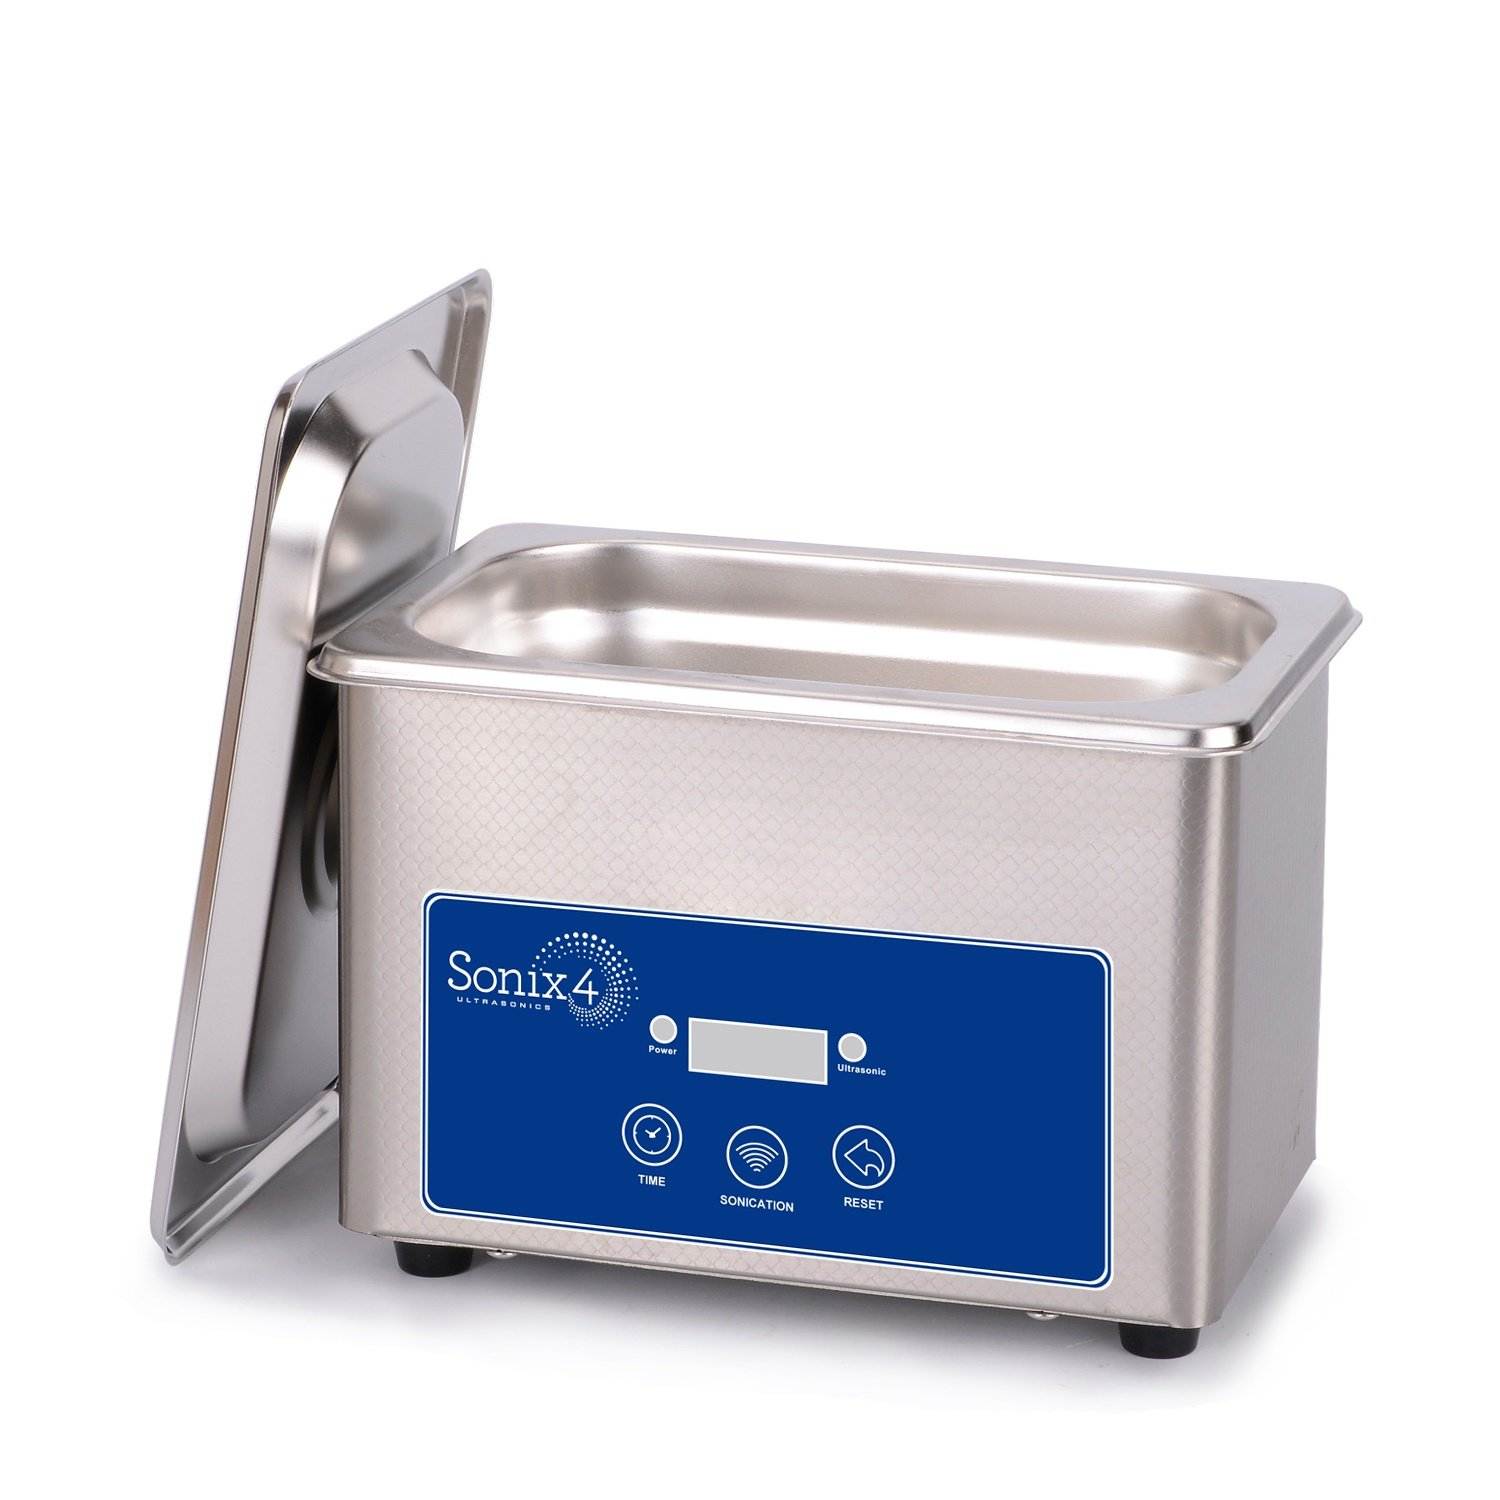 Sonix 4 Ultrasonics - Small, but Powerful All Stainless Steel ultrasonic Cleaner for Personal use, Jewelers, Tattoo Artists, Beauty and Nail Salons and More (SS192 -[1 Pint (.8 Liters)]) by Sonix IV Corporation (Image #1)